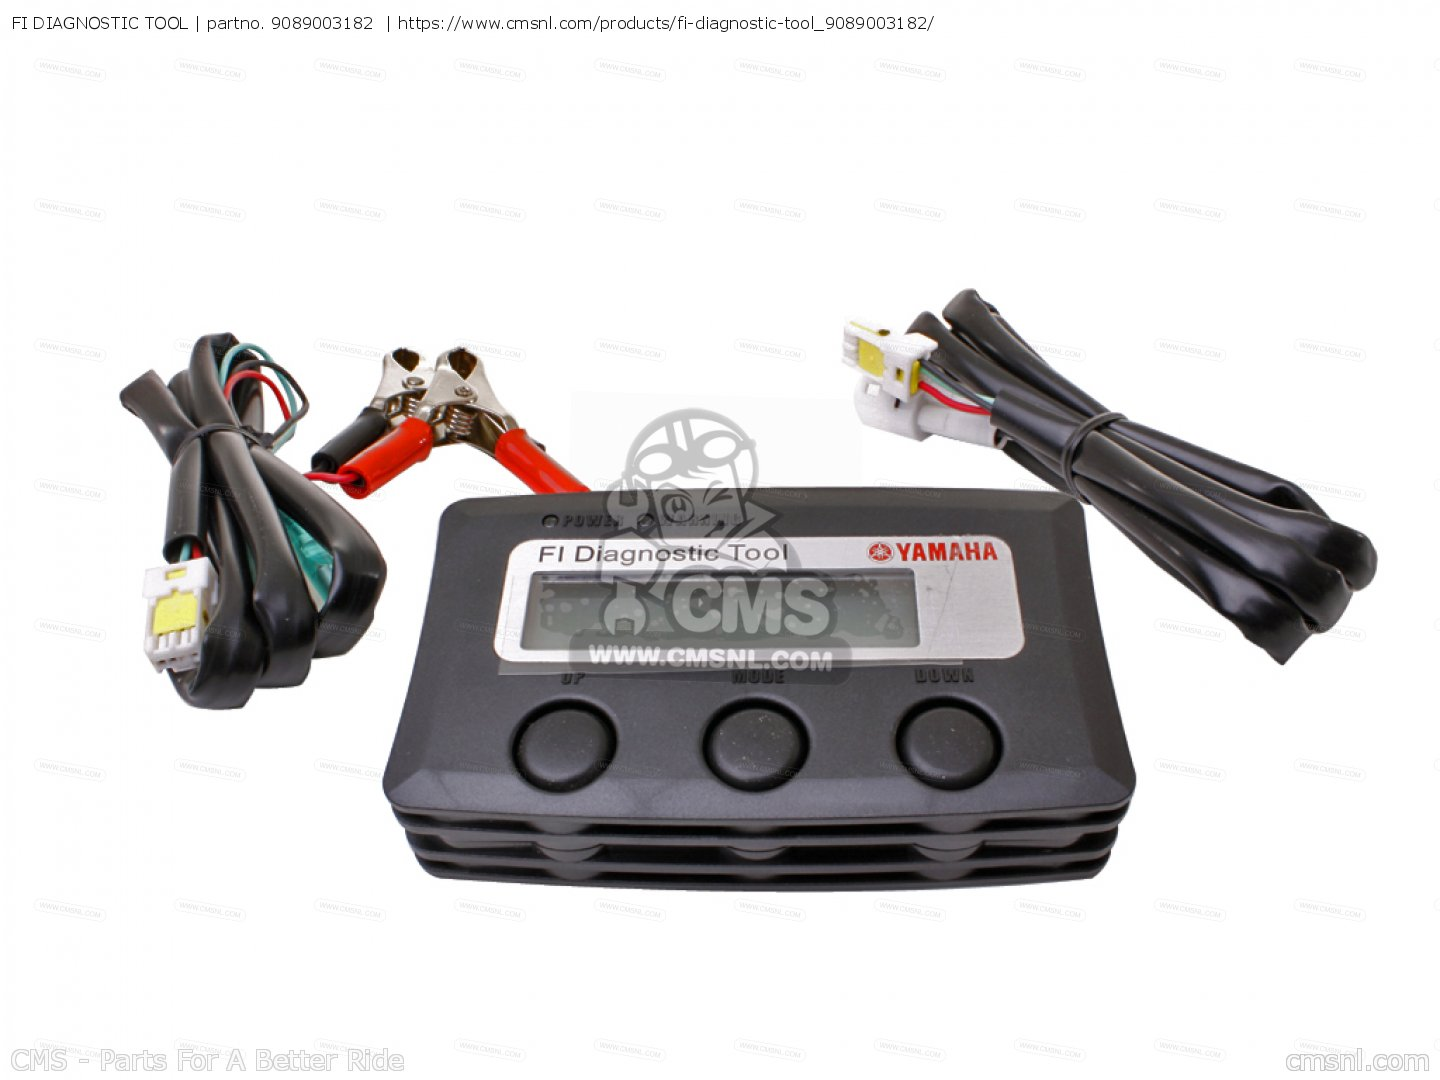 Yamaha Diagnostic Tool Wiring Diagrams Patent Us6612141 Interconnected Lock With Remote Locking Mechanism 9089003182 Fi Buy The 90890 3